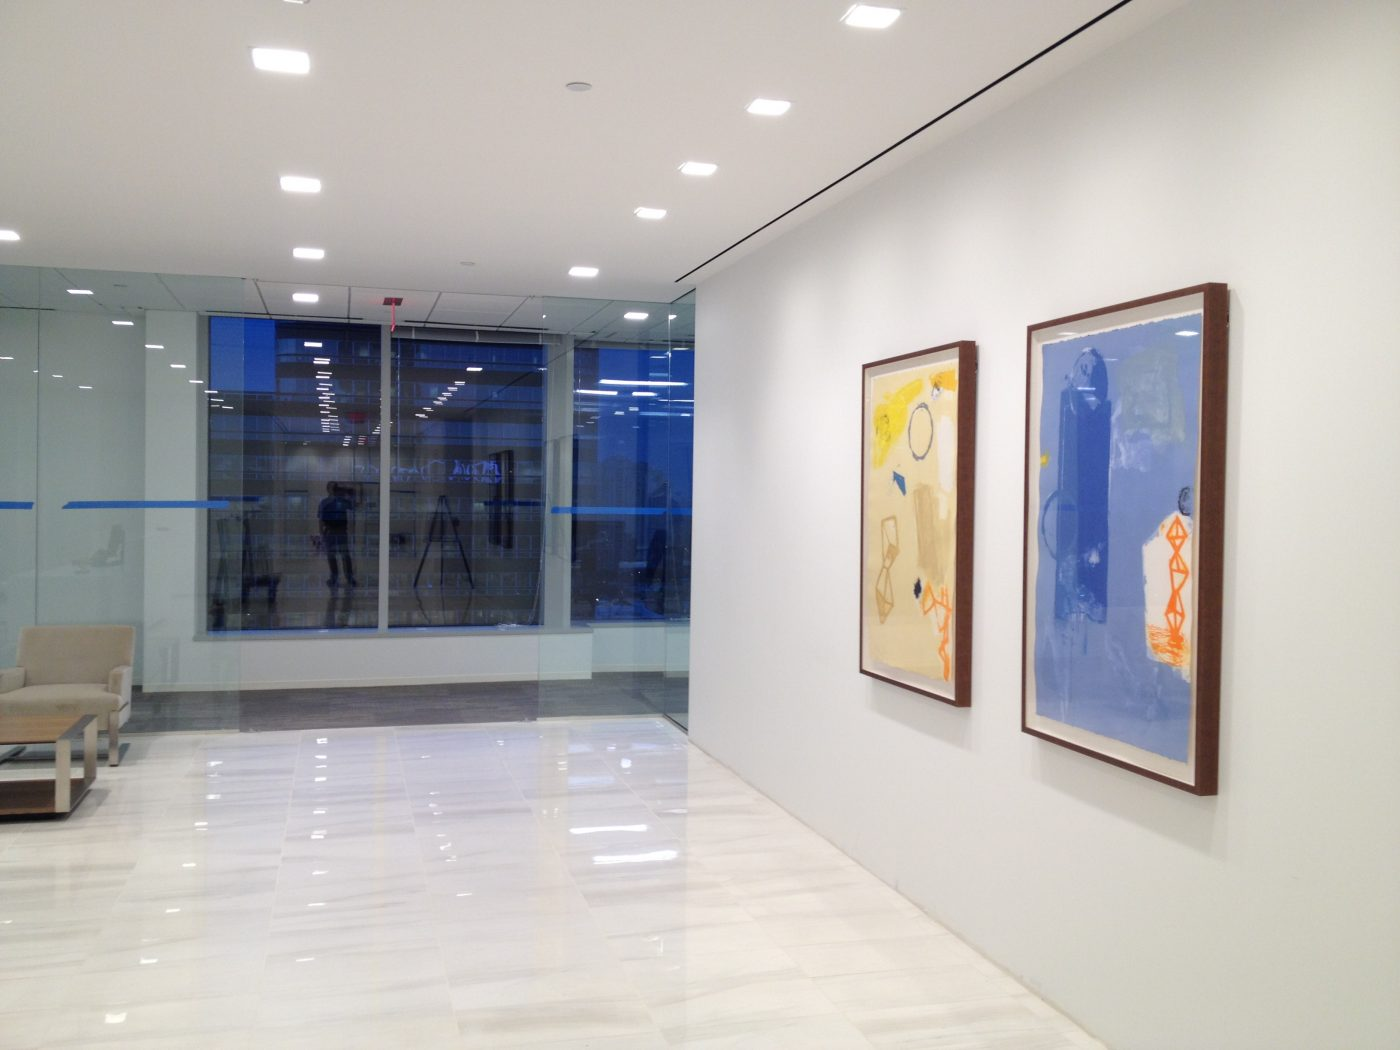 30th floor lobby showing two works by spanish artist Joaquin Capa